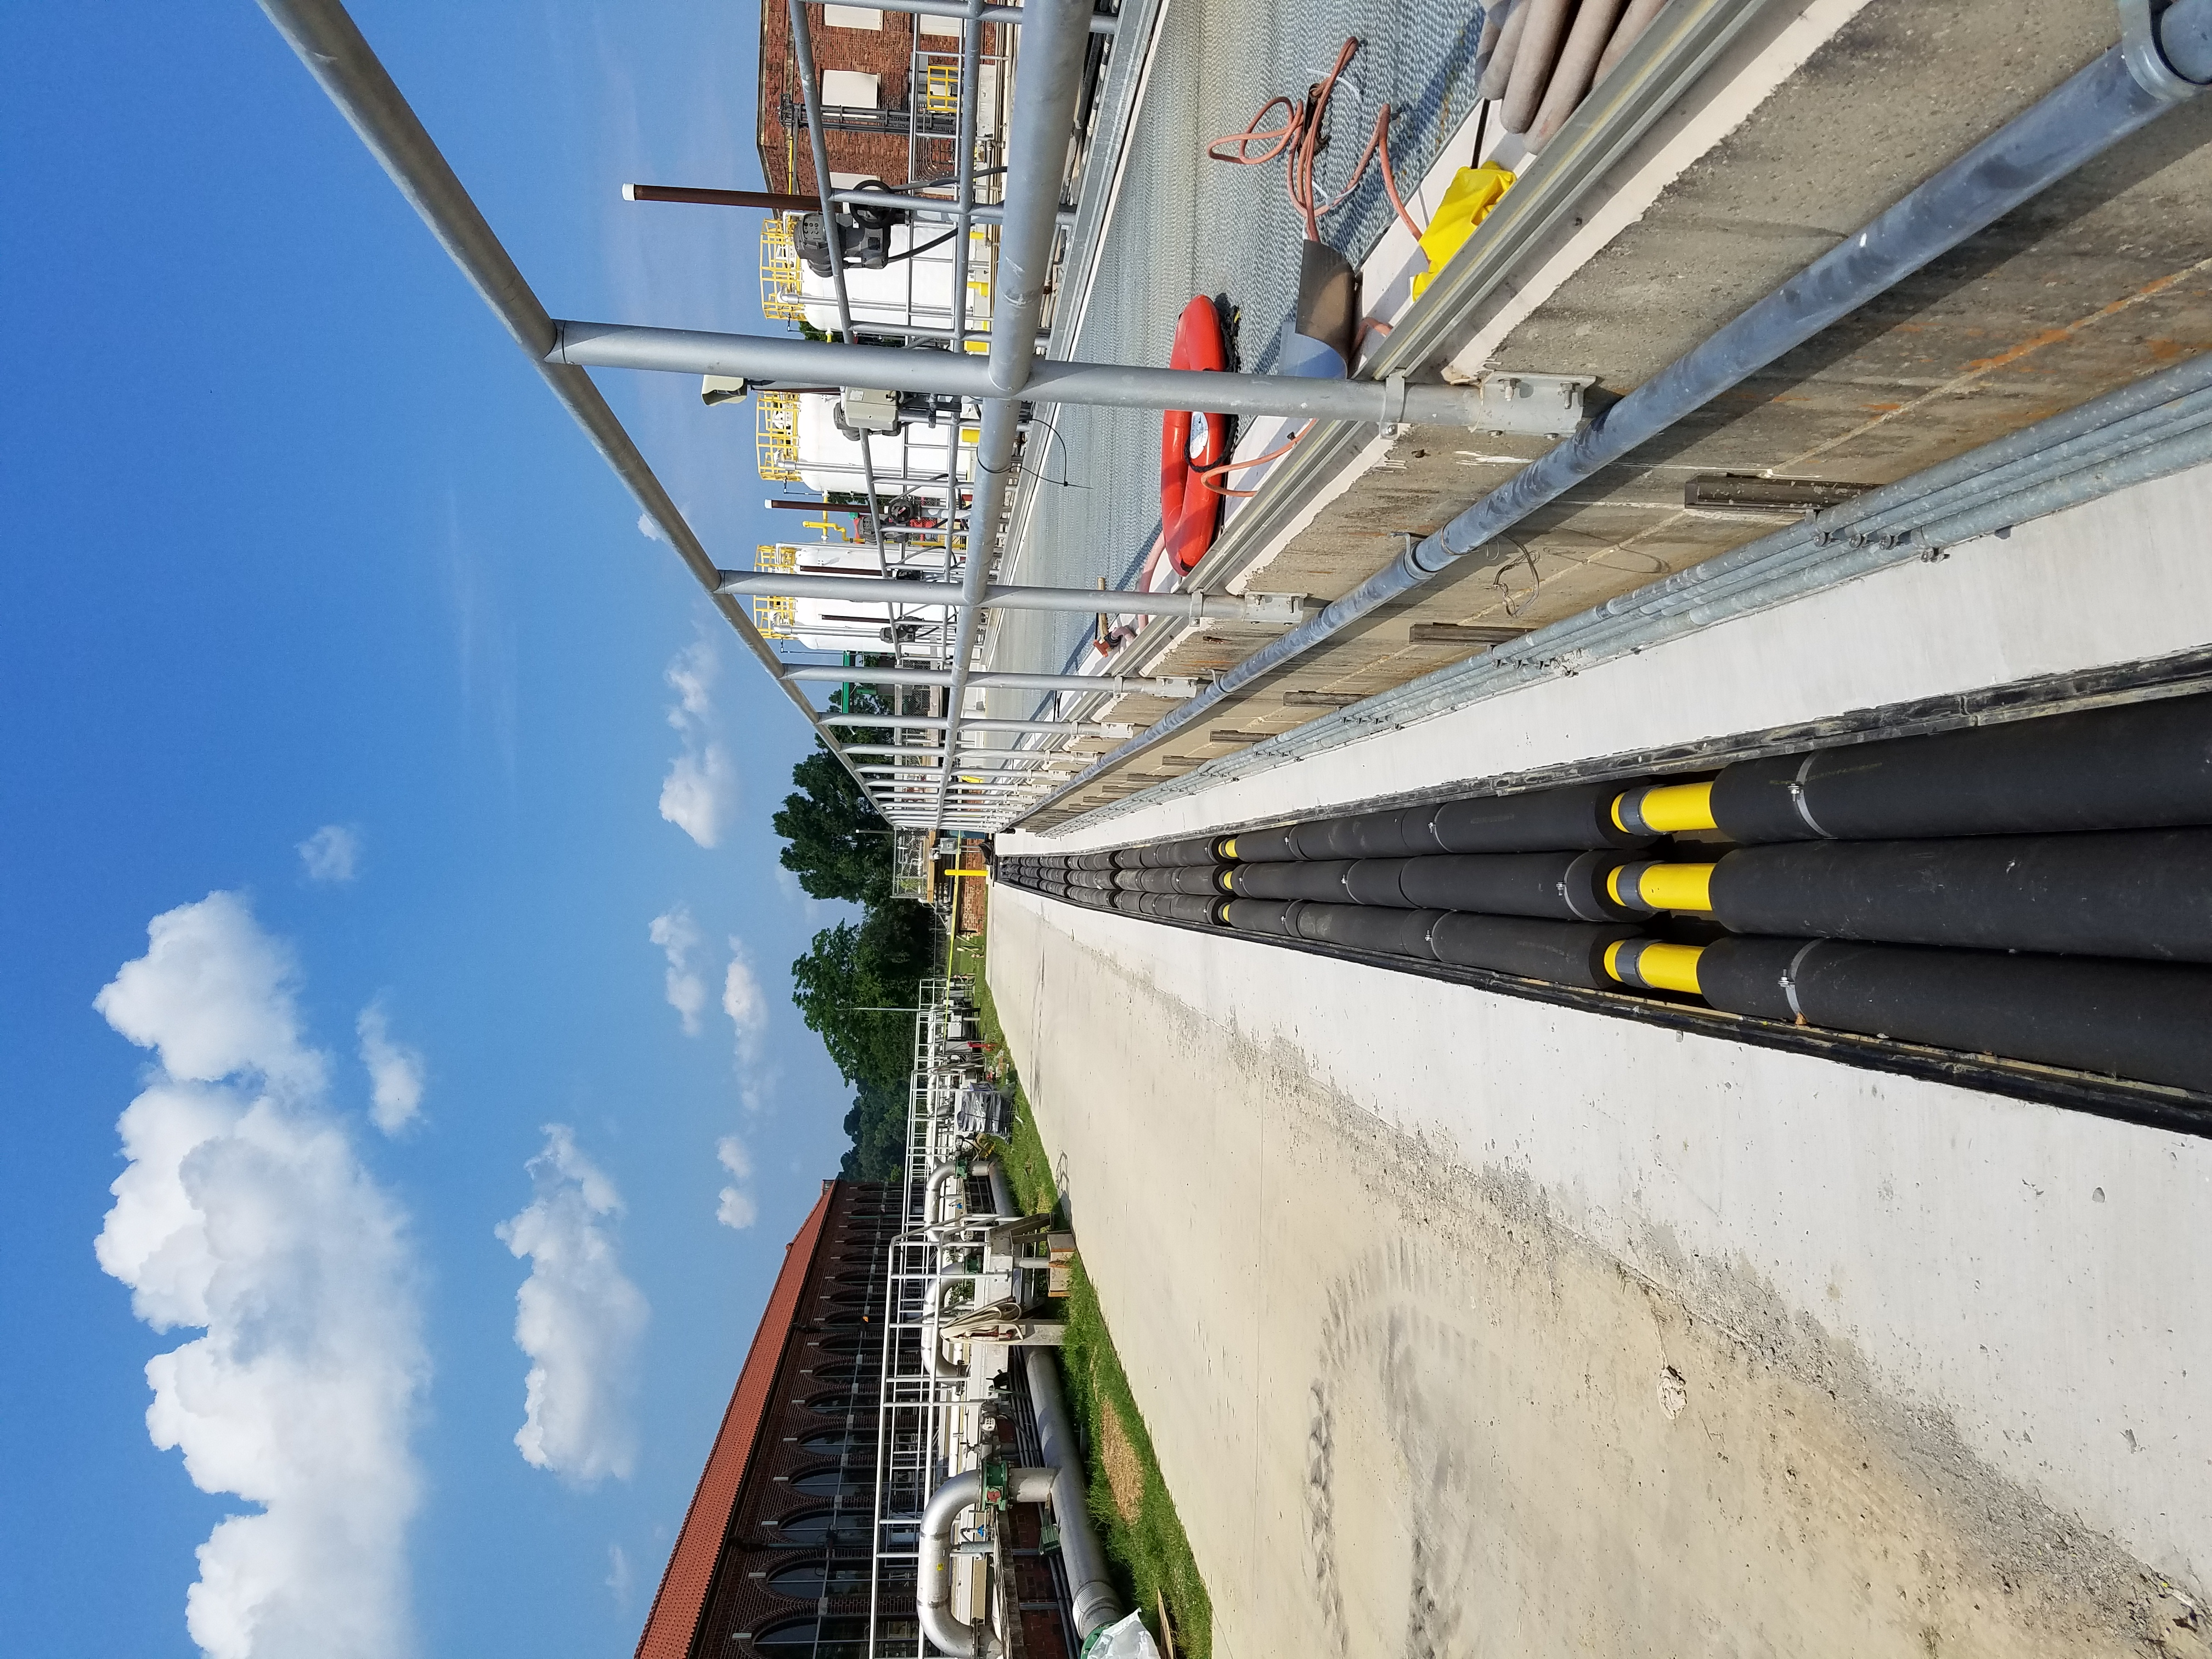 Waste Water Treatment Utility trench